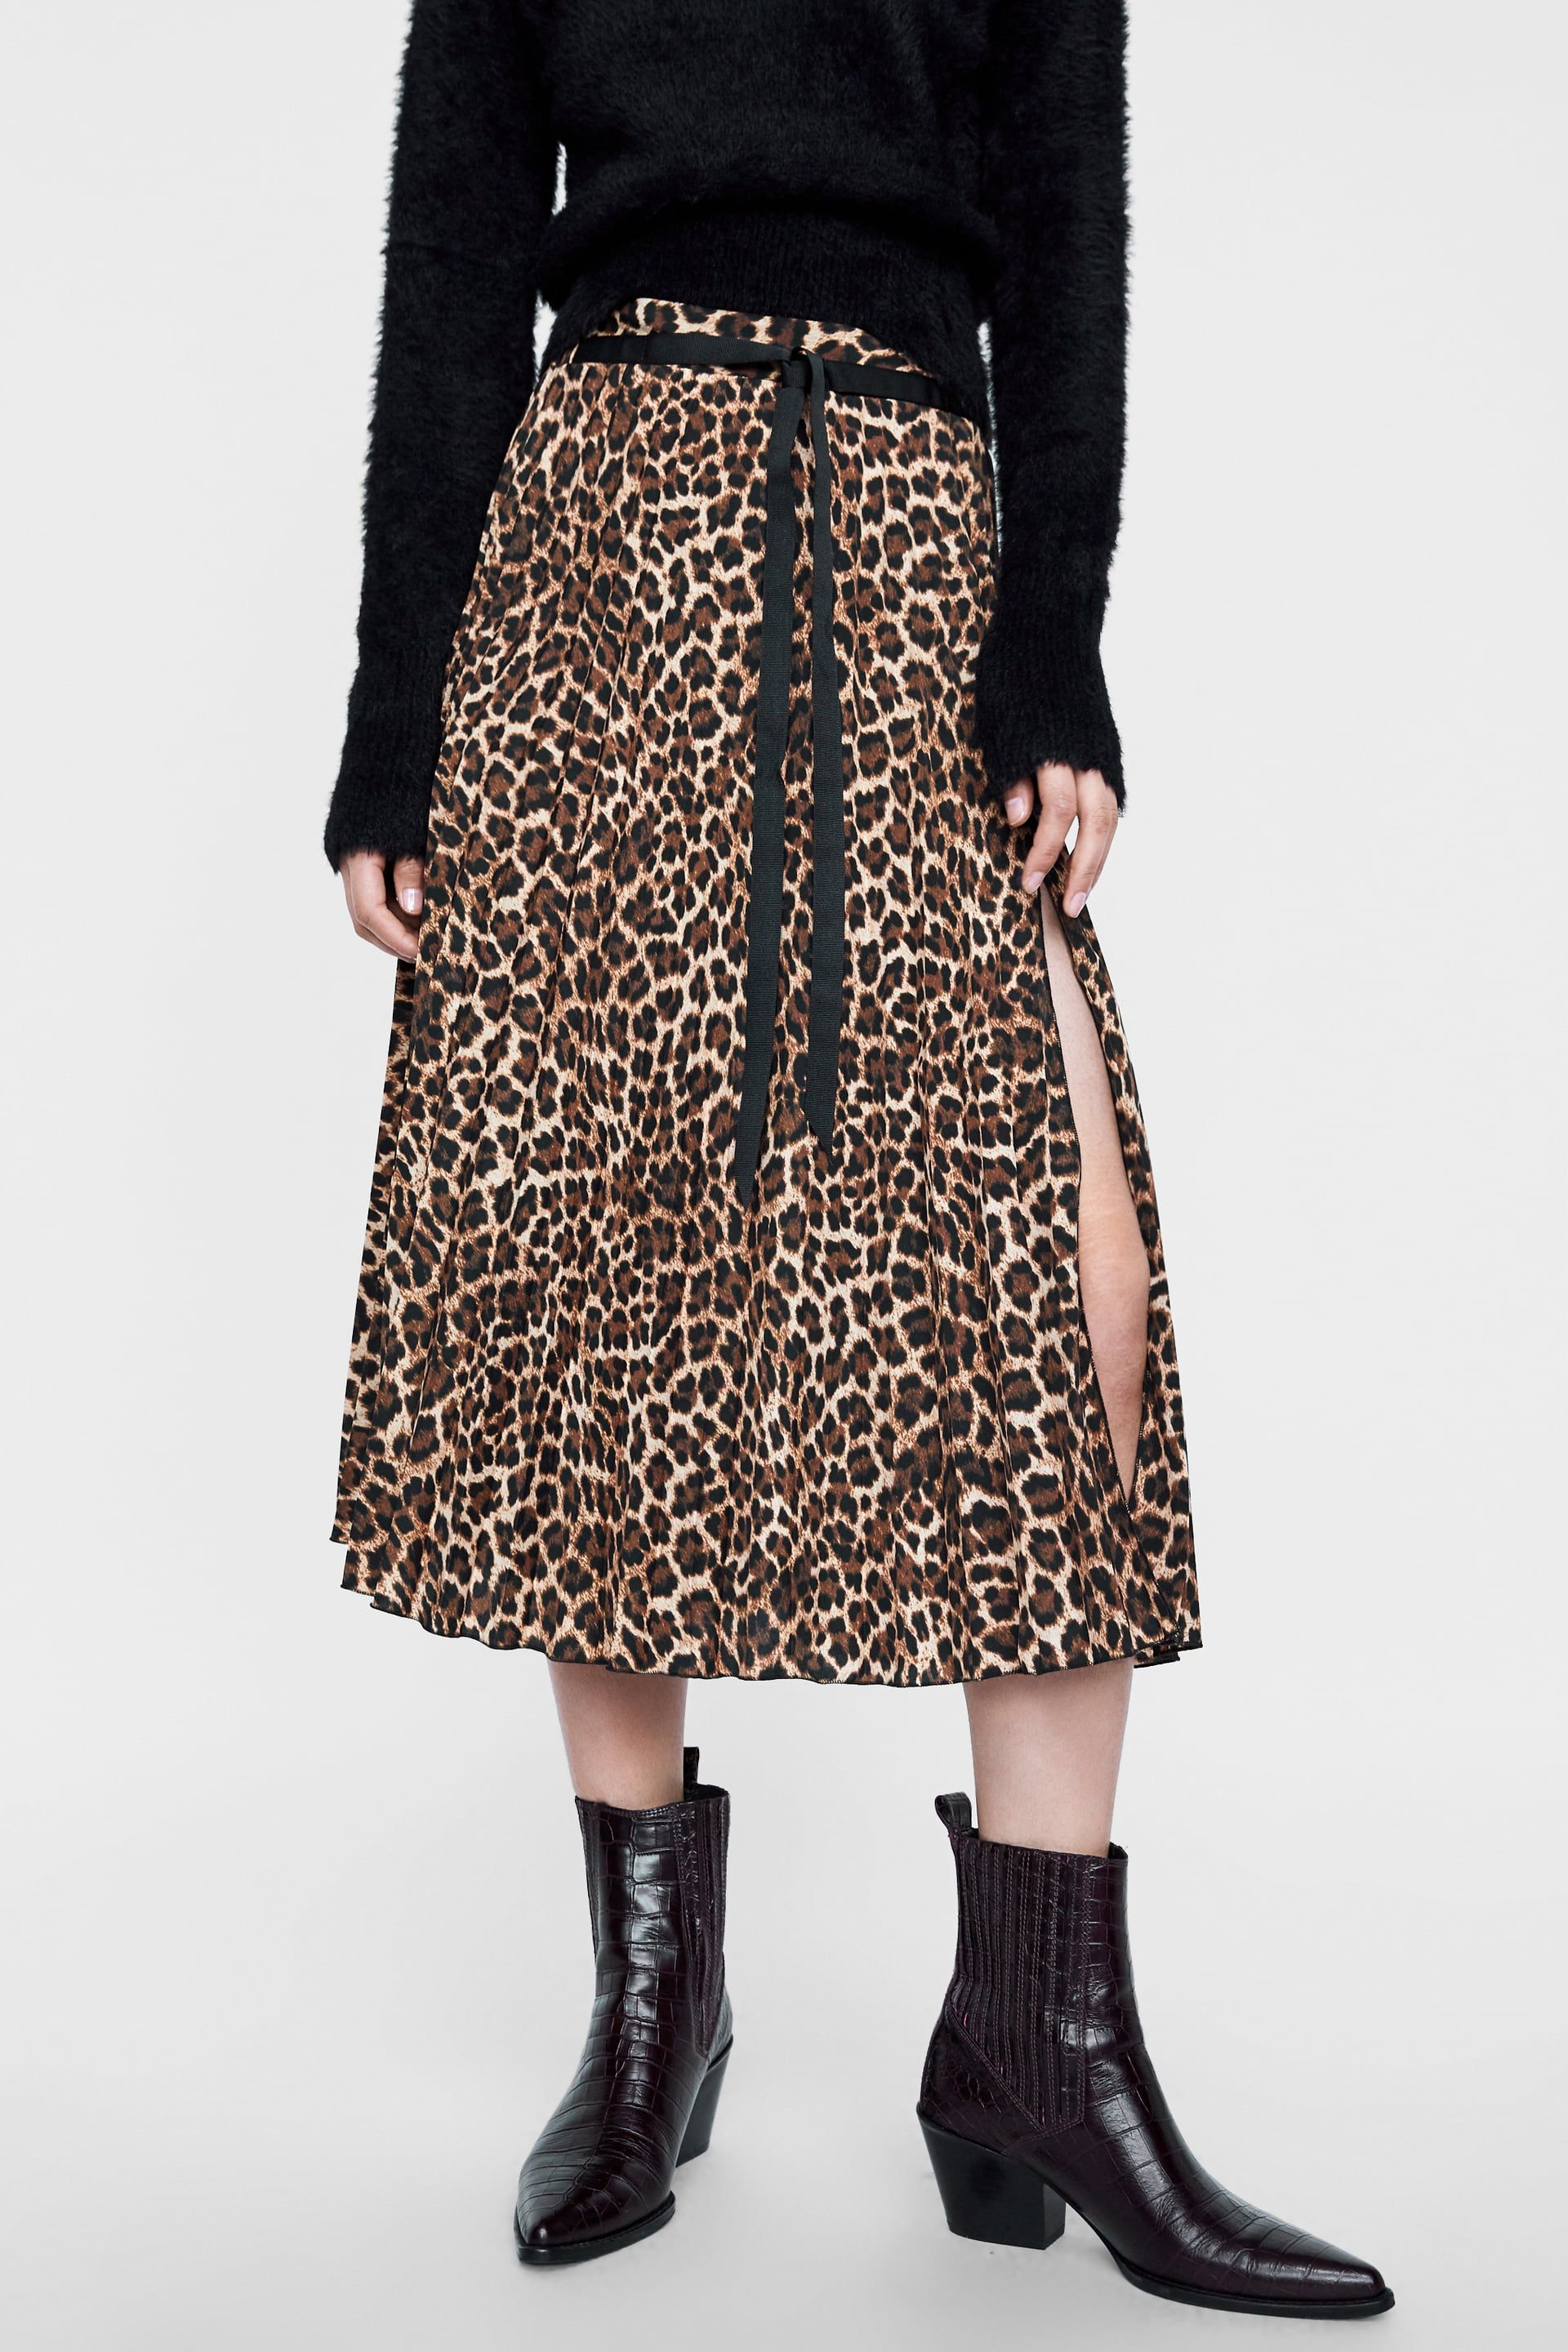 f418fb4303 Image 2 of ANIMAL PRINT PLEATED SKIRT from Zara | Style Delights in ...